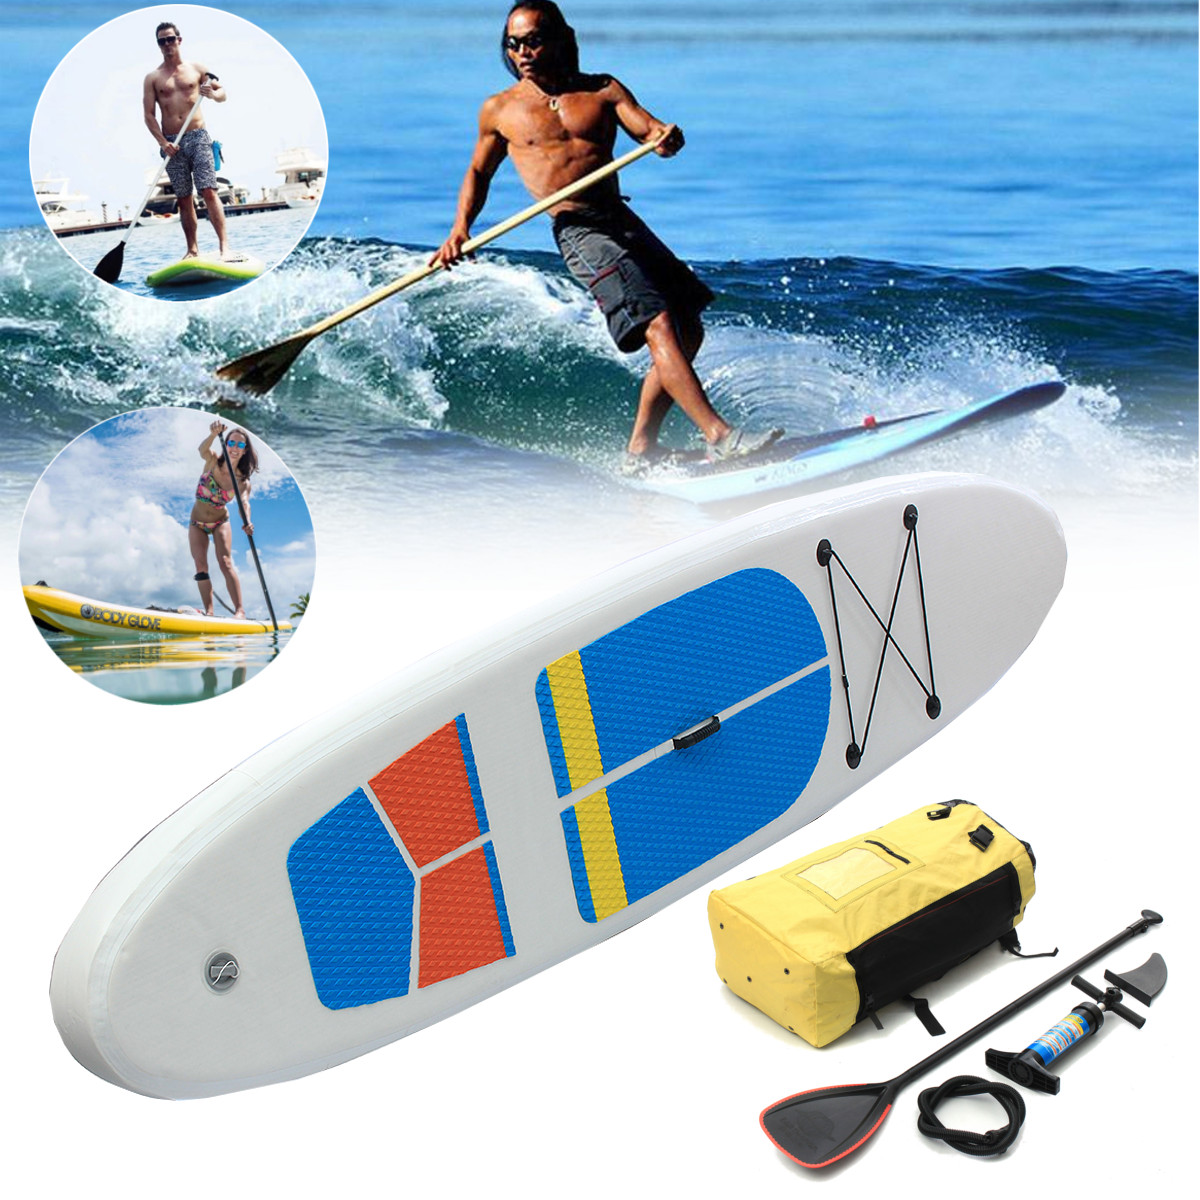 10ft x 2.5ft SUP Stand Up Paddle Surfboard Inflatable Board with Travel Backpack Hand Pump handpump for Surfing/ Aqua Yoga/Fishing